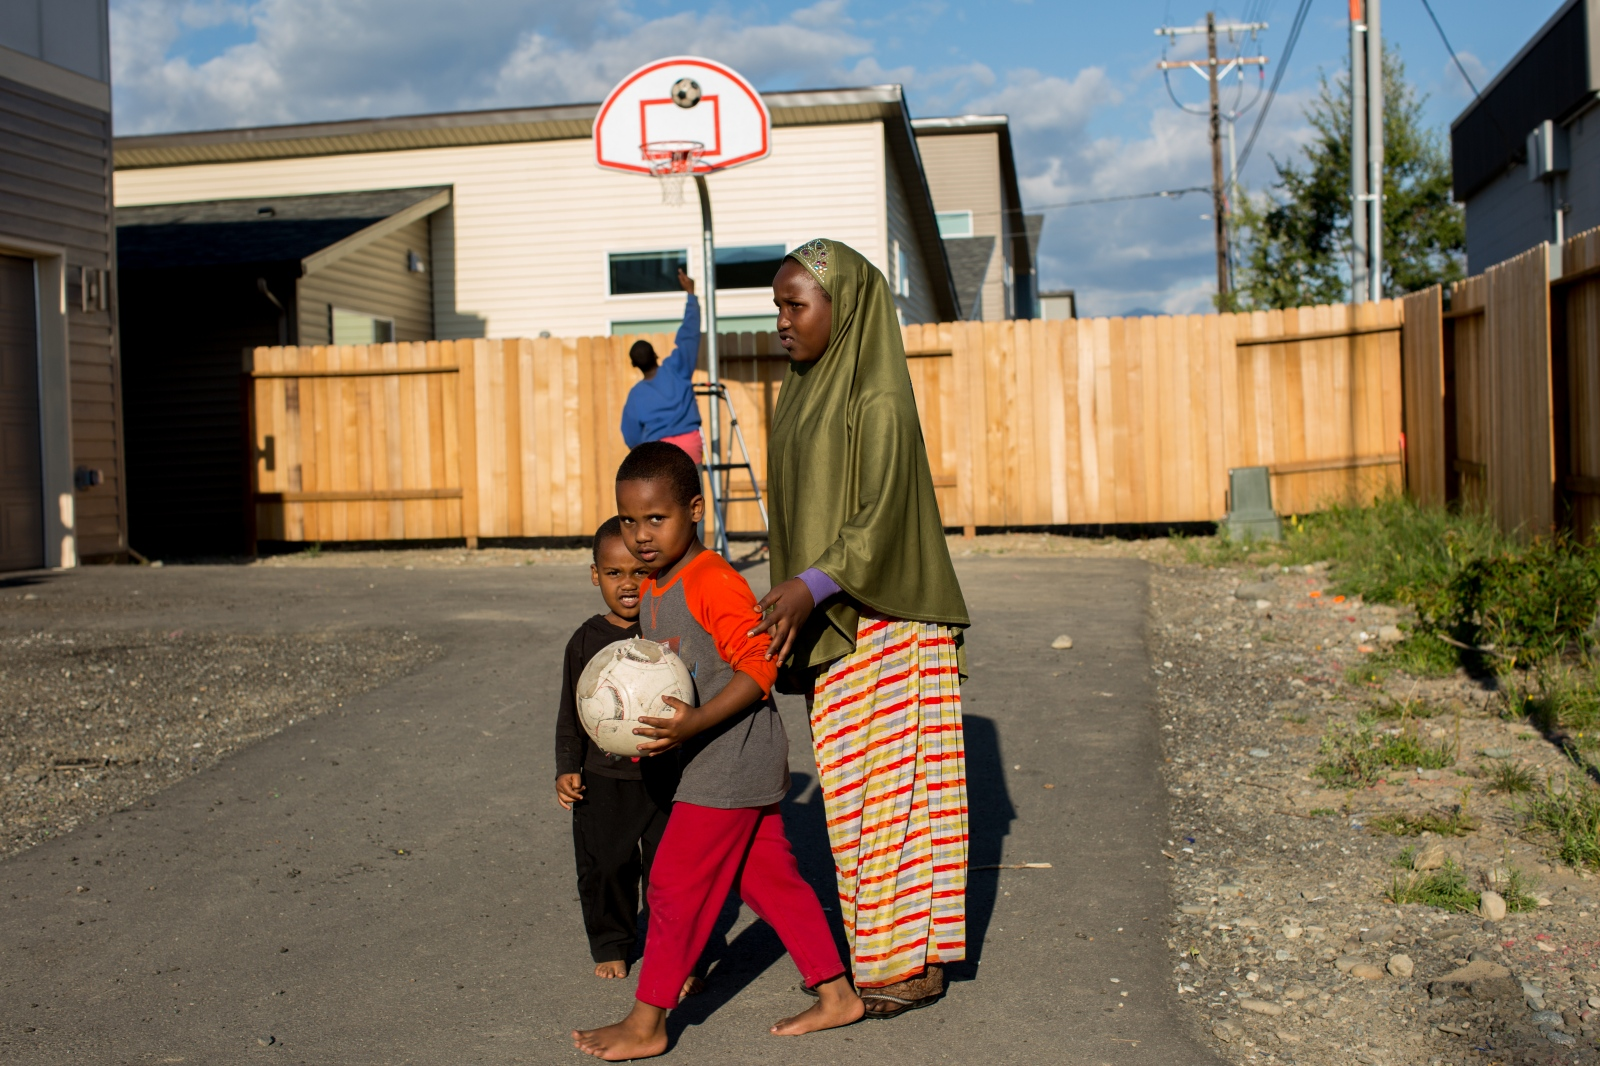 Children playing in Mountain View. The northeast Anchorage neighborhood of Mountain View has been recently named the most diverse in the nation by census information, but while the area is rich with culture, according to the last census 19% of households are living below the poverty line. As with most areas experiencing poverty, Mountain View experiences more crime than more affluent neighborhoods in the city.